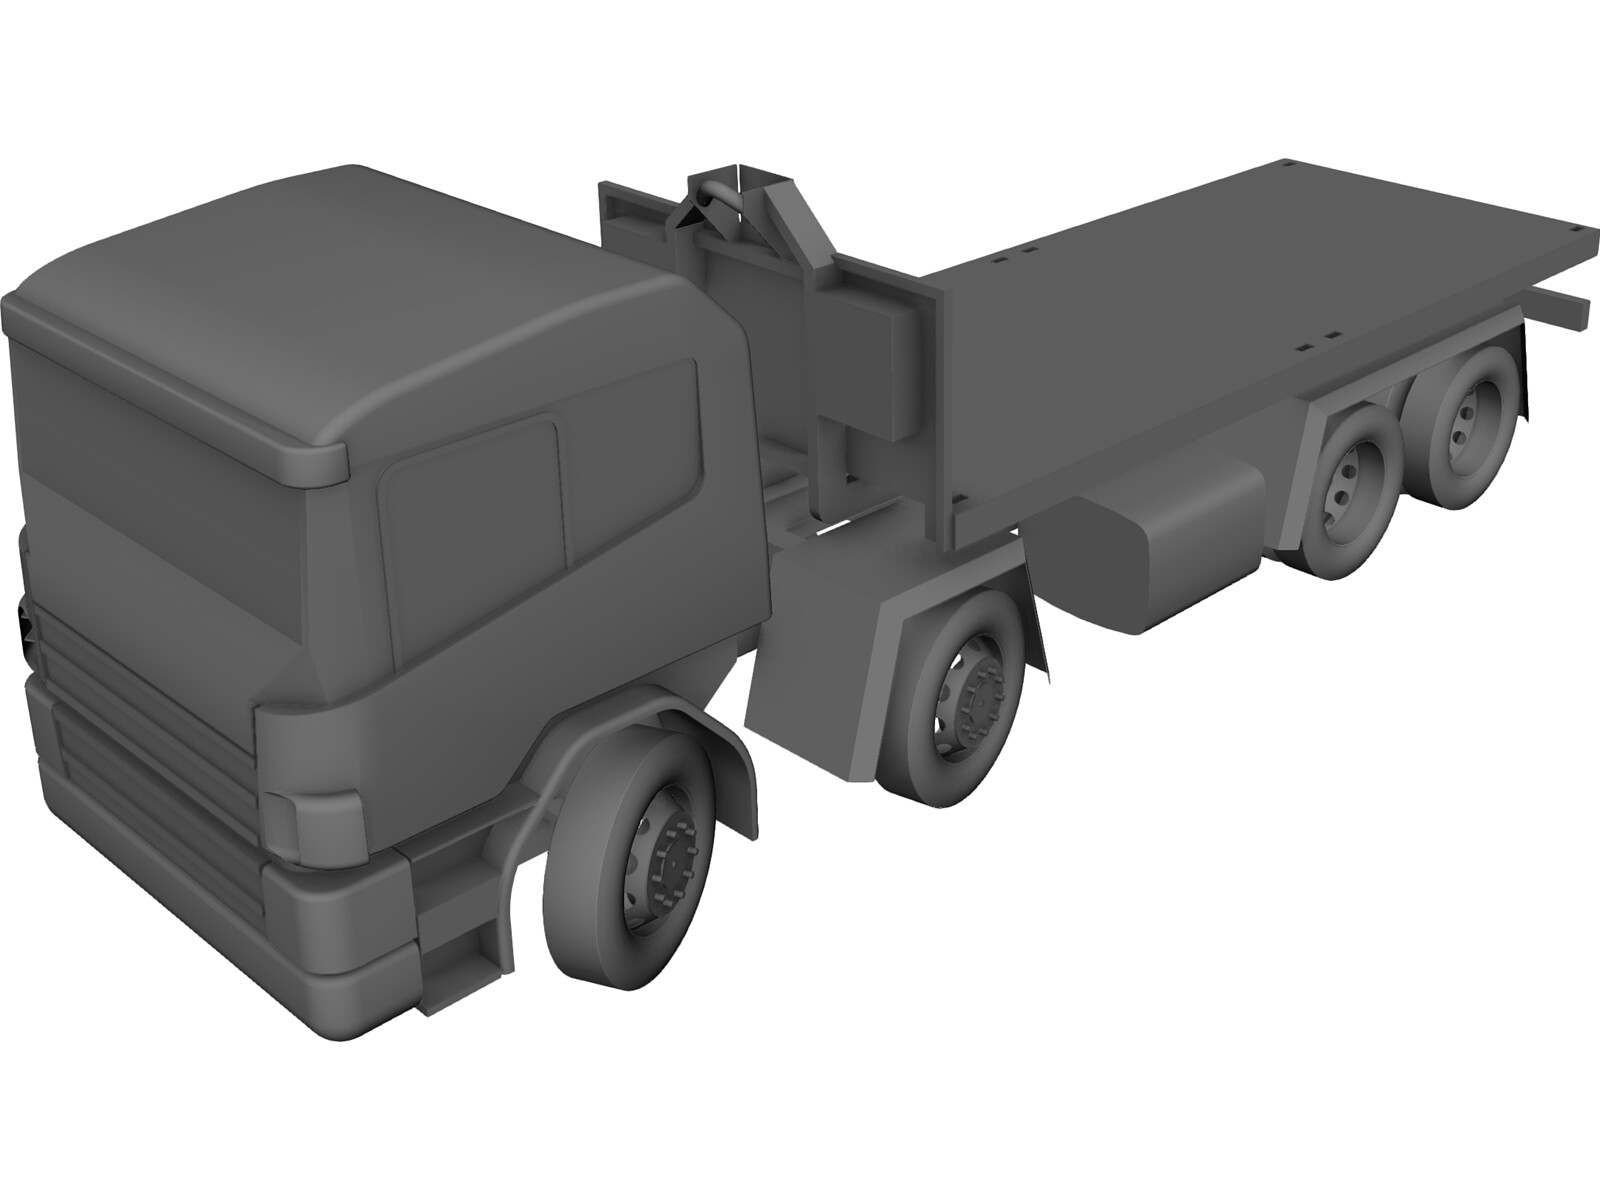 Scania 124 Military Protected 3D CAD Model